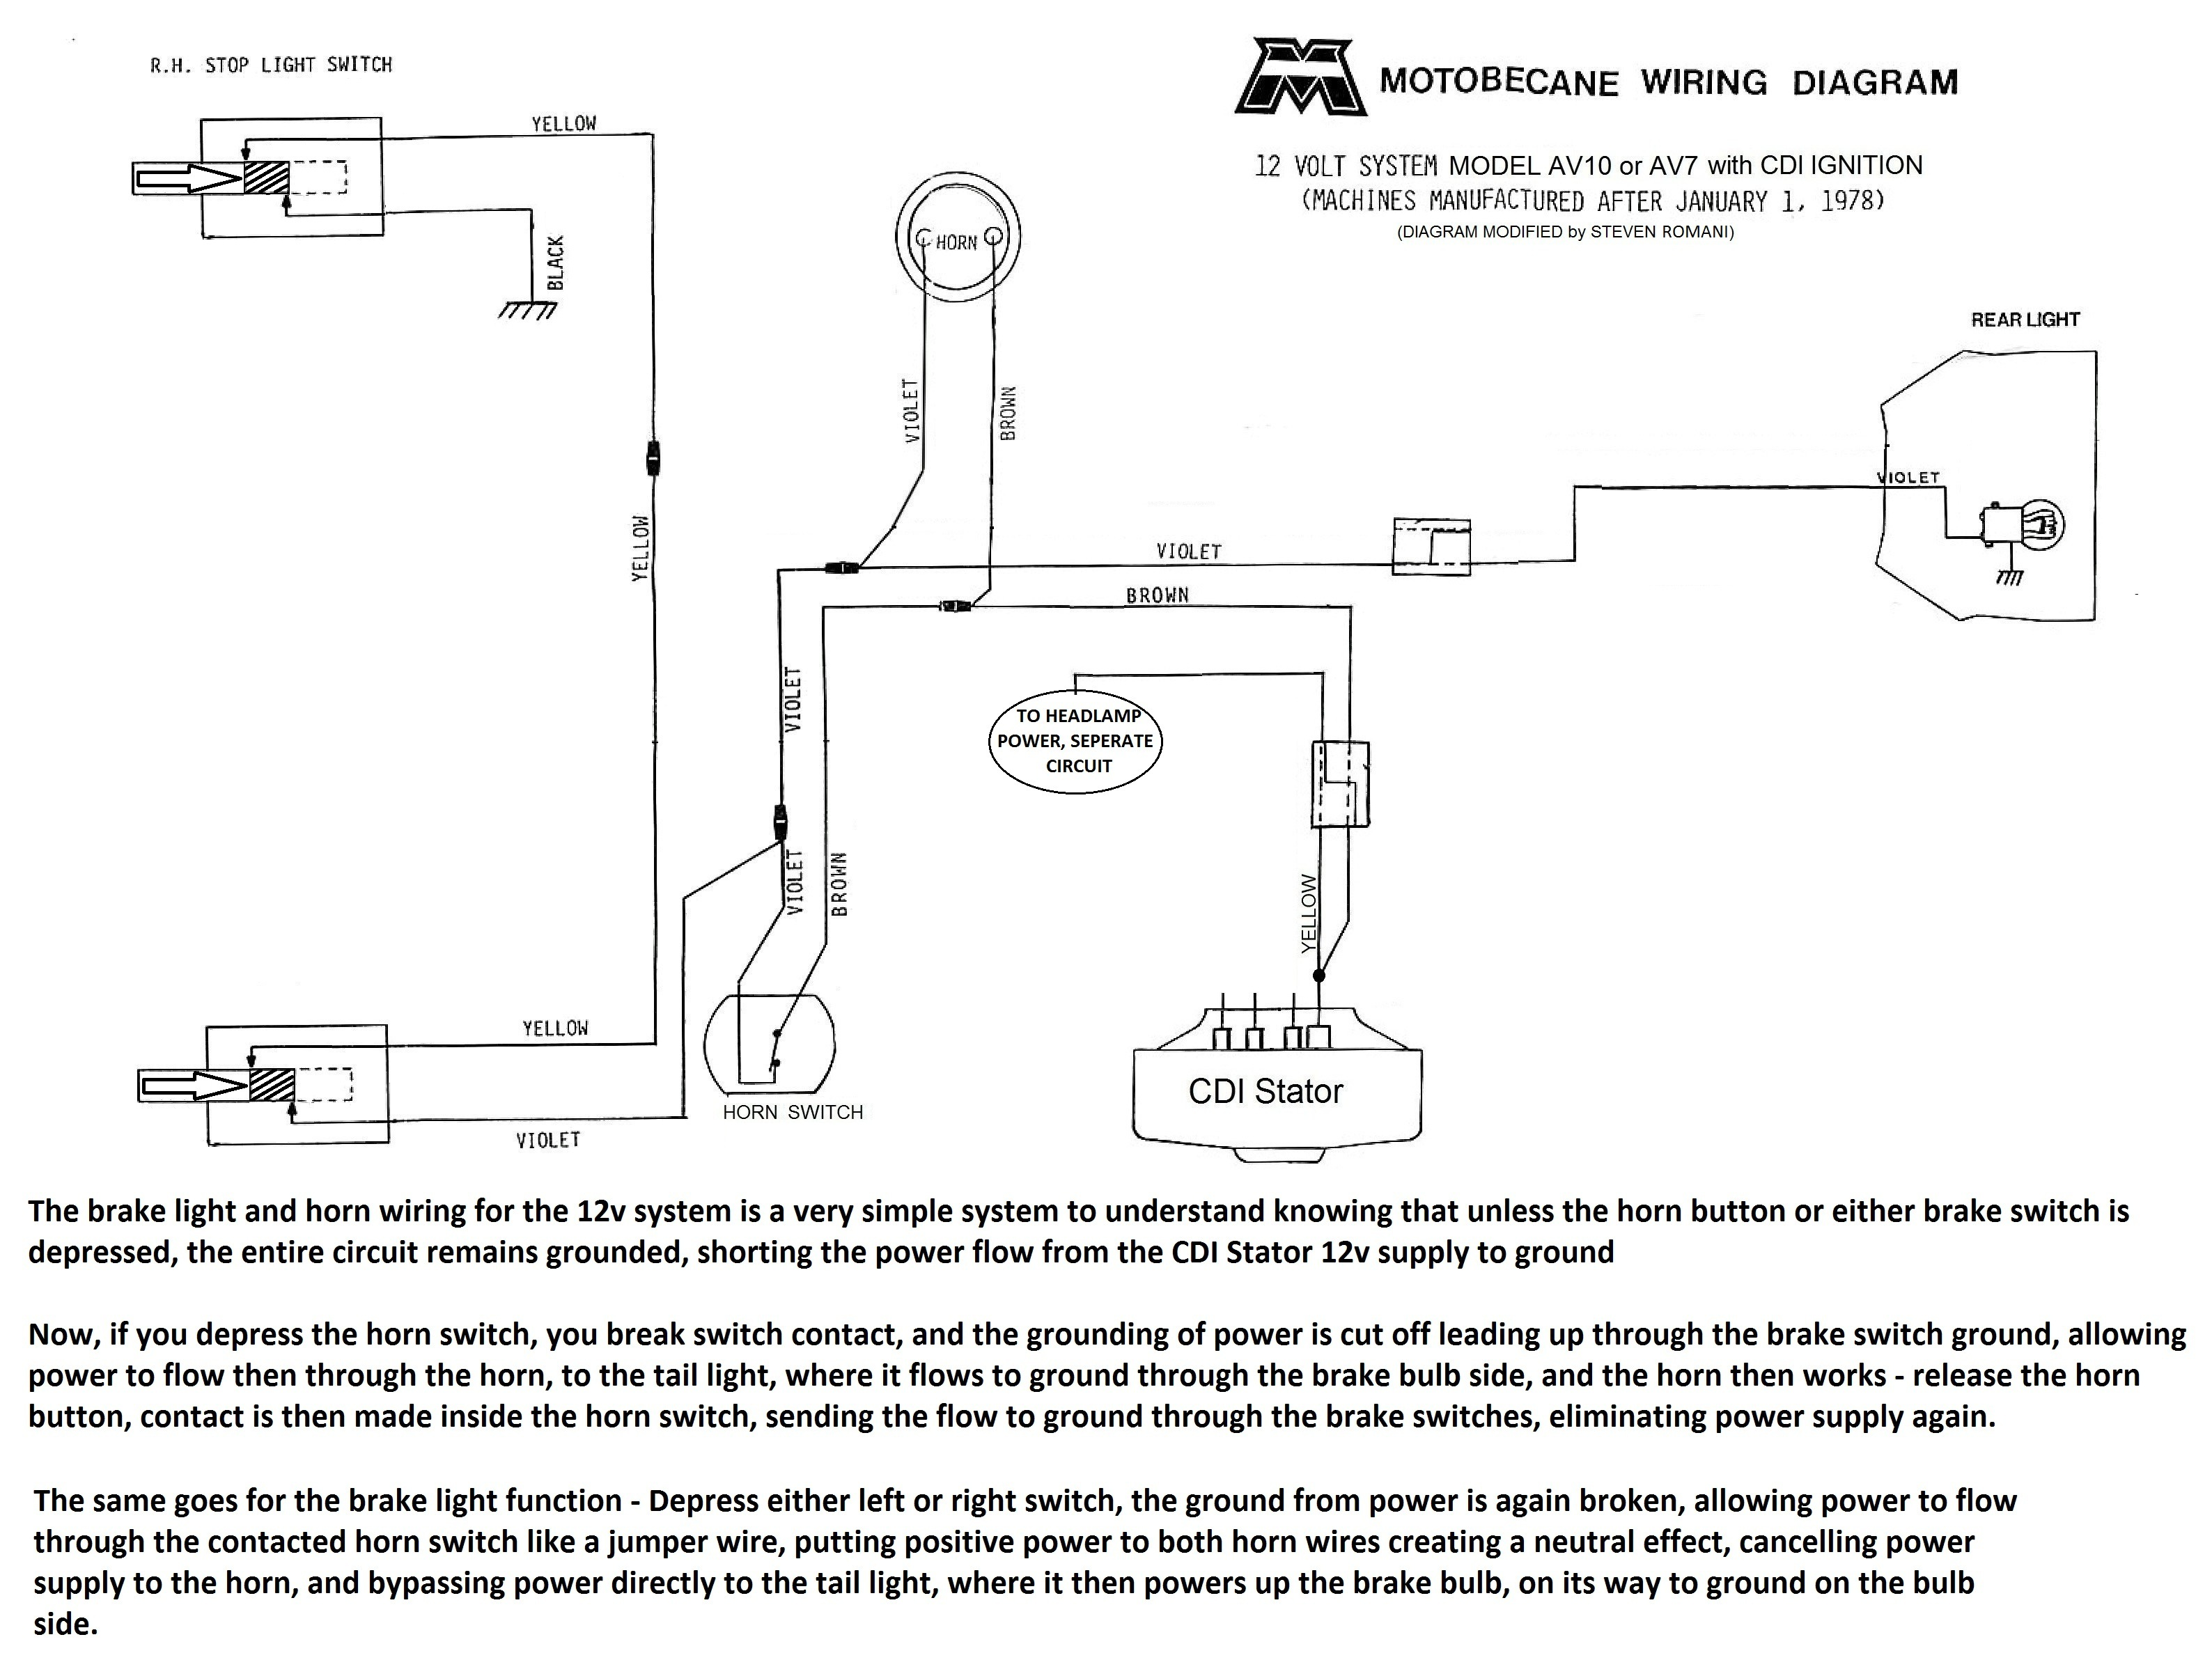 Motobecane 12v CDI wiring diagram AV10 SECONDARY power.jpg